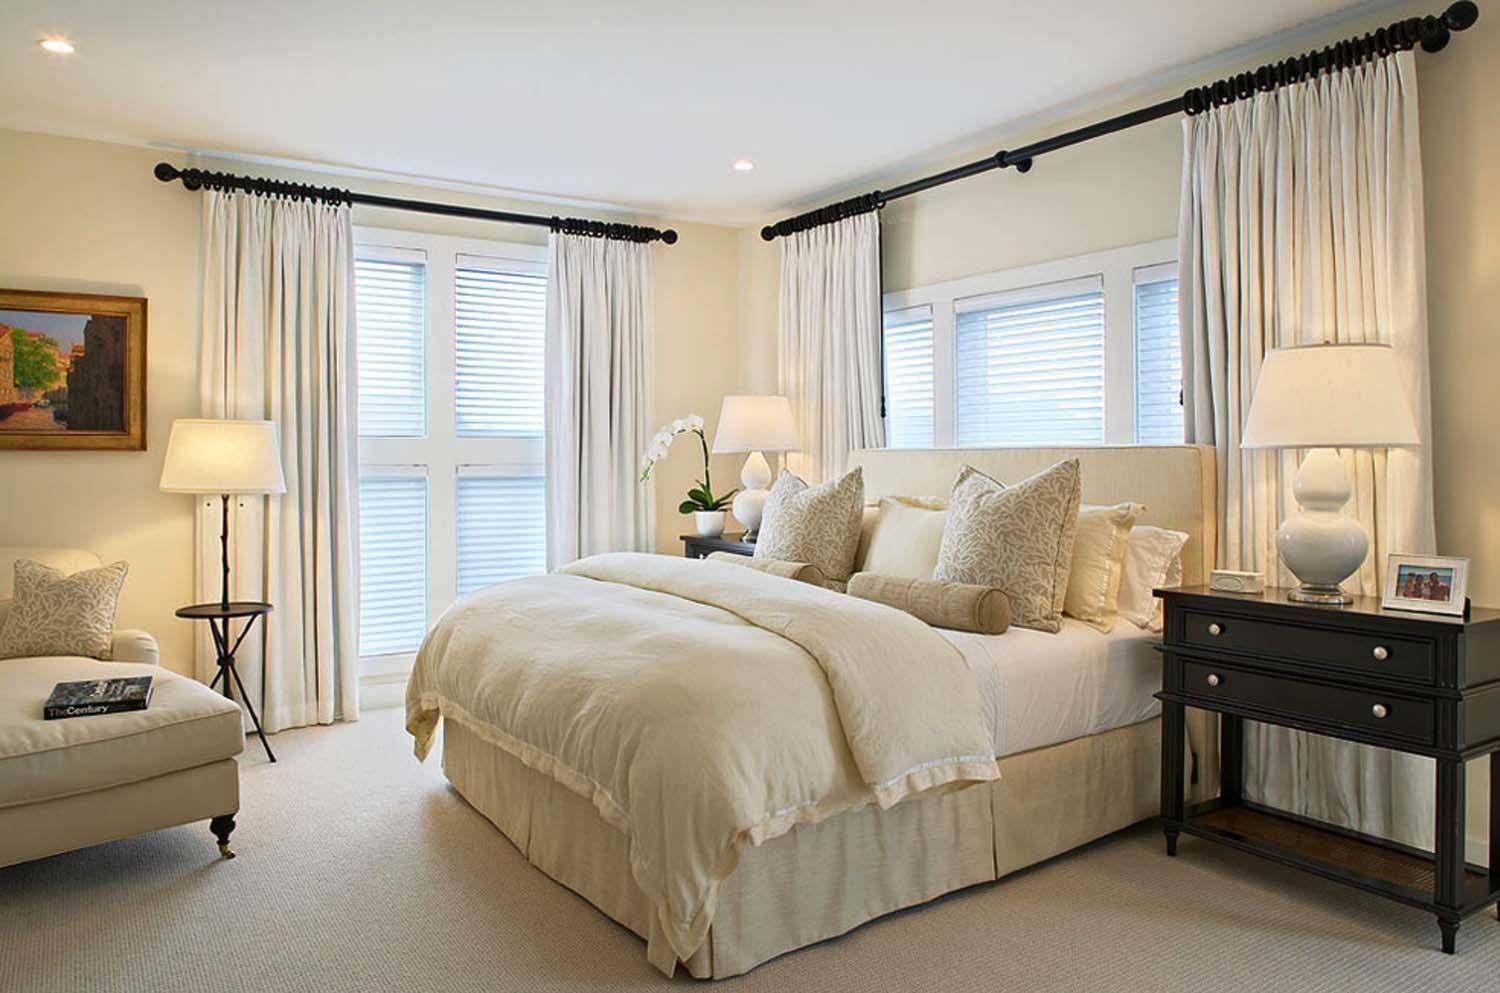 Master bedroom paint colors   Spectacular neutral bedroom schemes for relaxation  Bedrooms